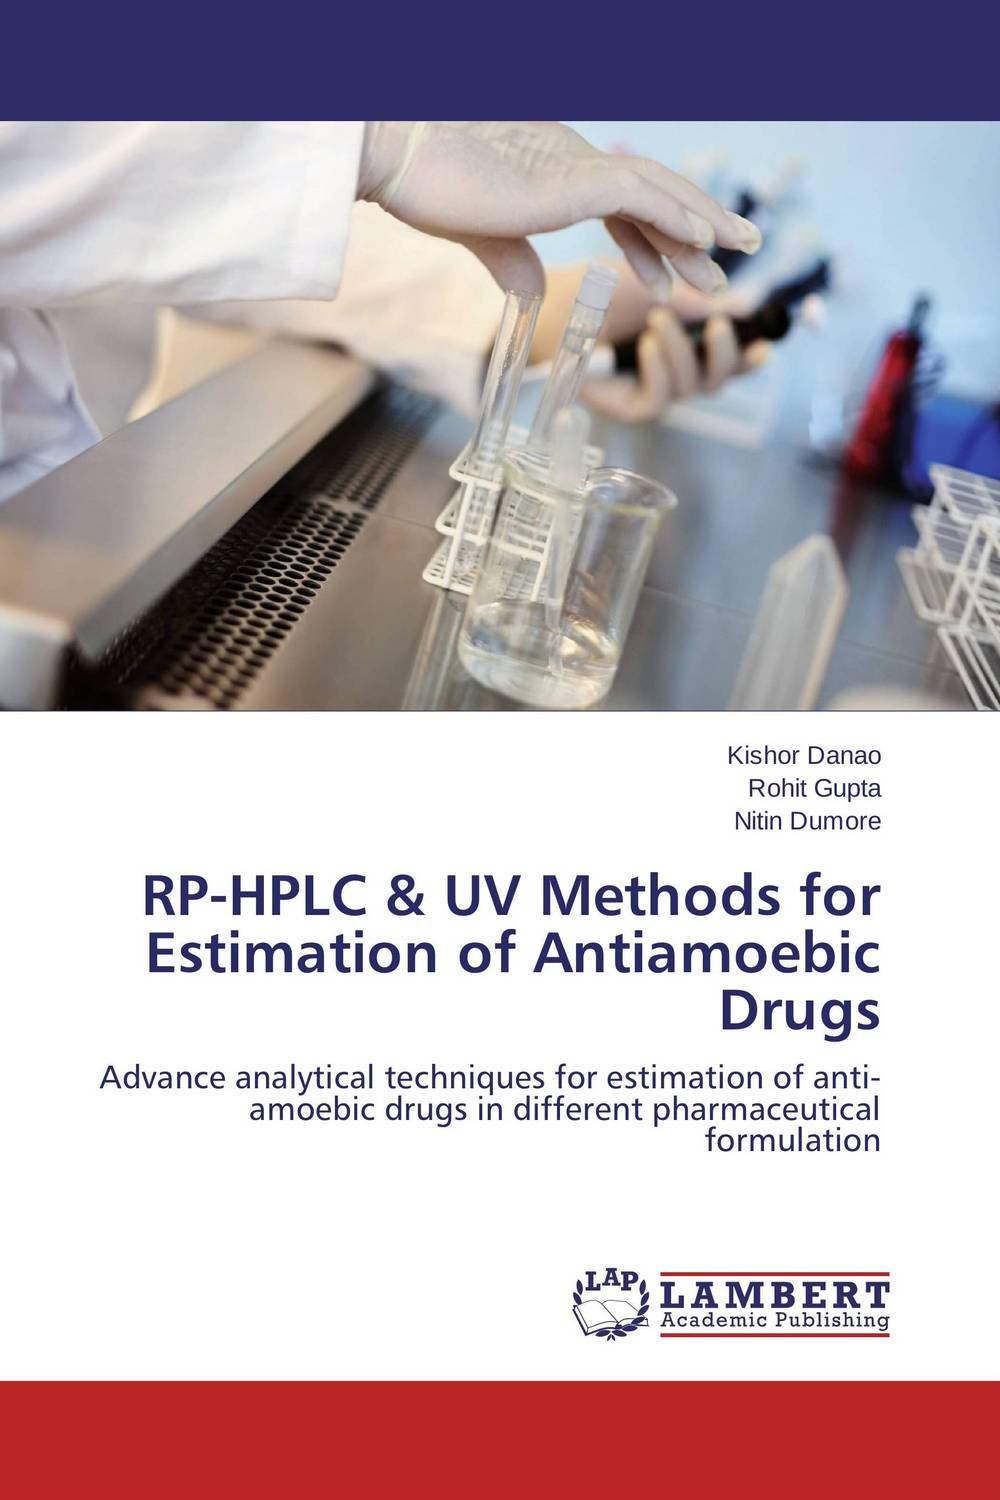 RP-HPLC & UV Methods for Estimation of Antiamoebic Drugs hydrotropic solubilization phenomenon for spectroscopic estimation